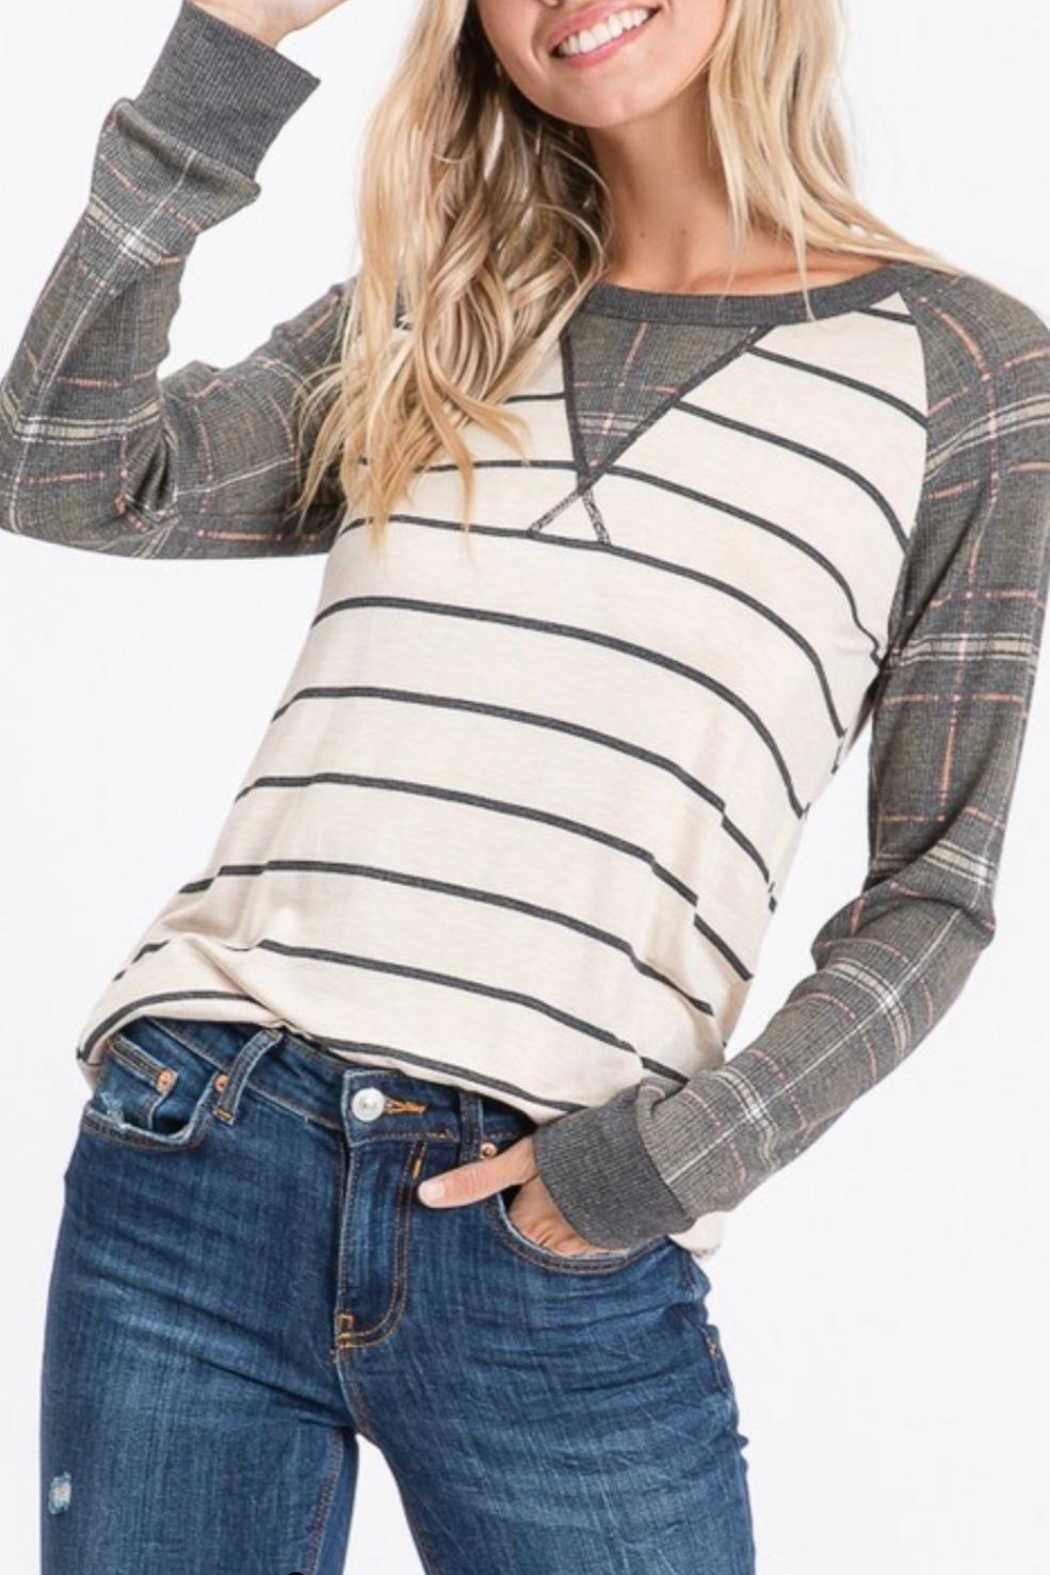 7th Ray Plaid Raglan-Sleeve Top - Front Full Image